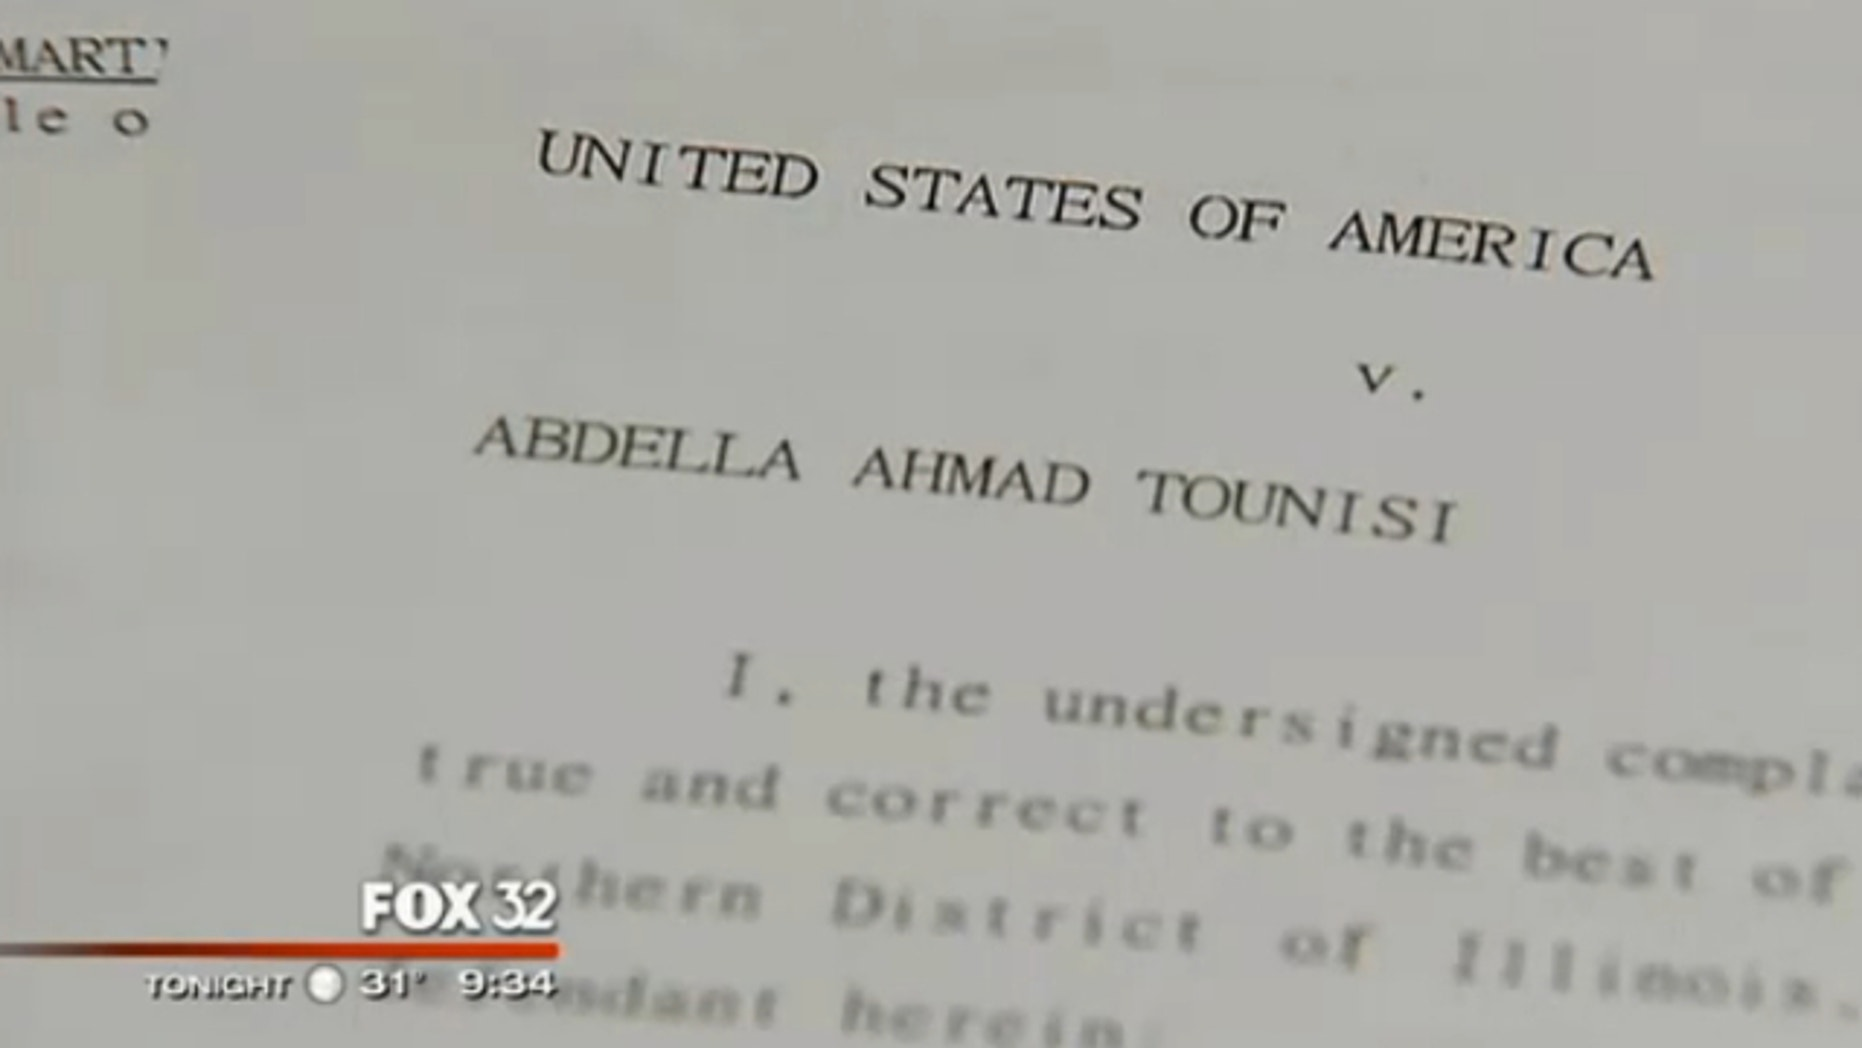 UNDATED: This image shows the federal complaint against 18-year-old Abdella Ahmad Tounisi, who is suspected of trying to join an Al Qaeda-affiliated group in Syria.